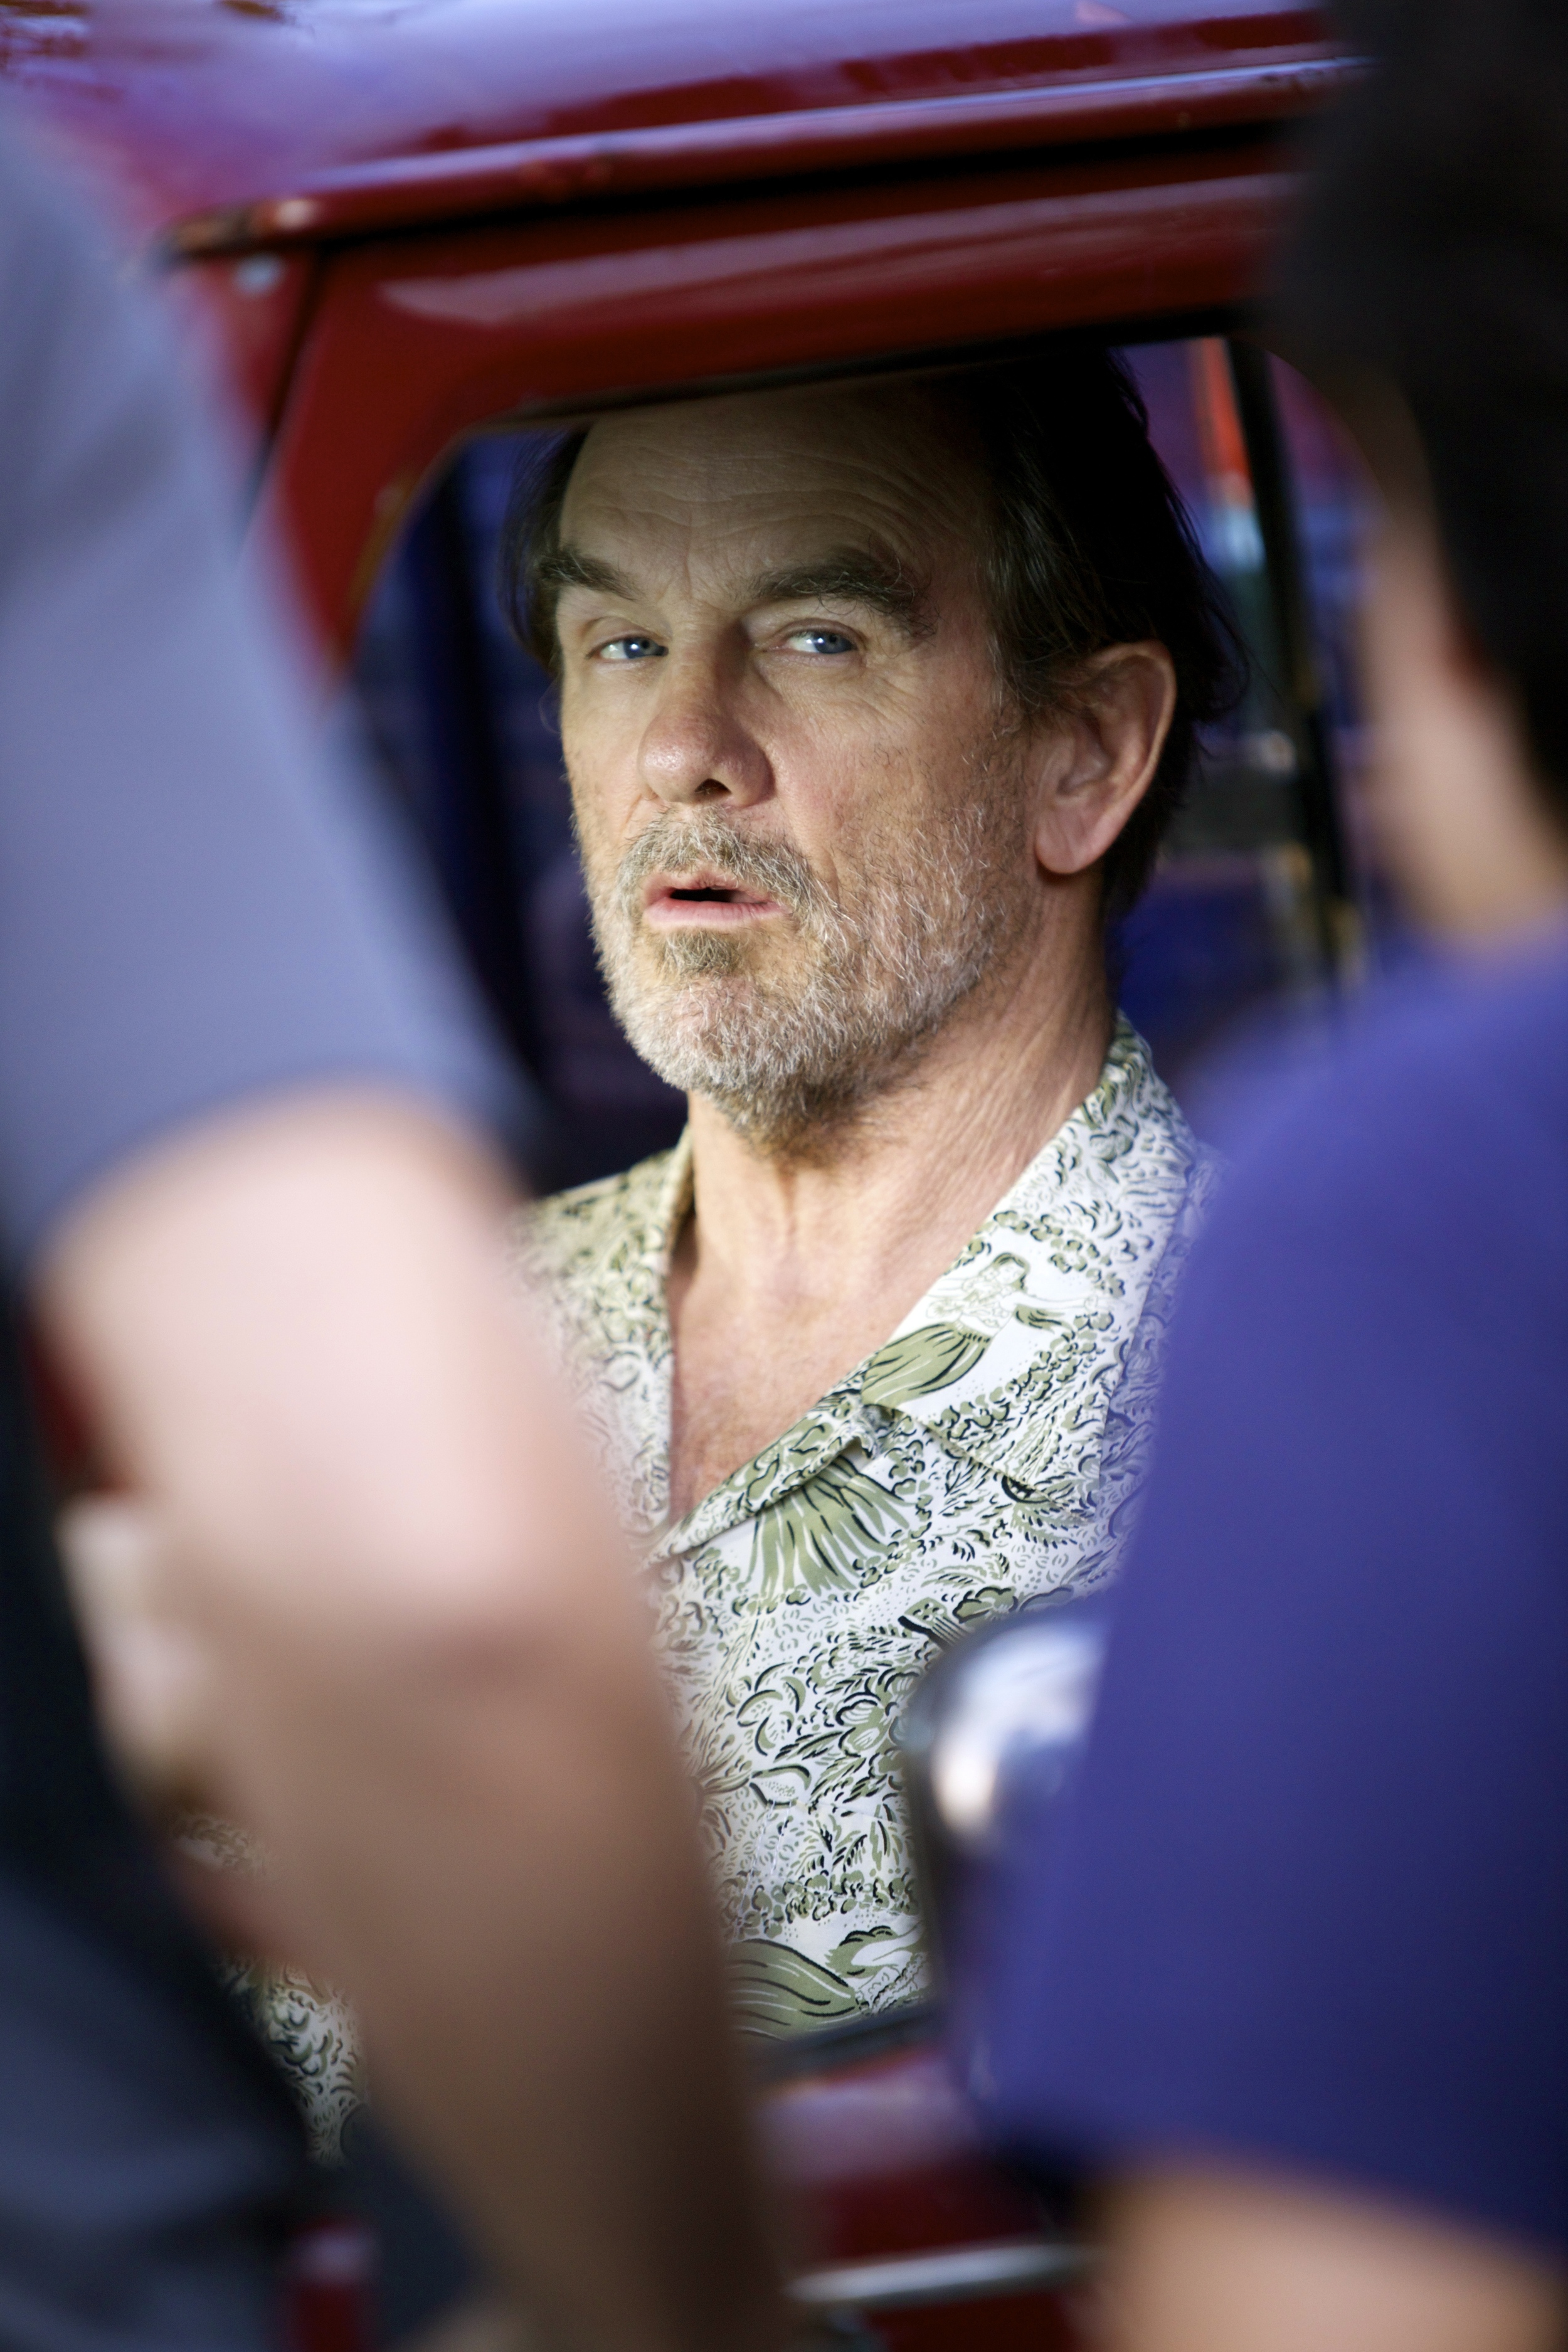 Award winning actor  John Diehl gets framed for the opening shot in the film. (Photo: Ashley Smith)